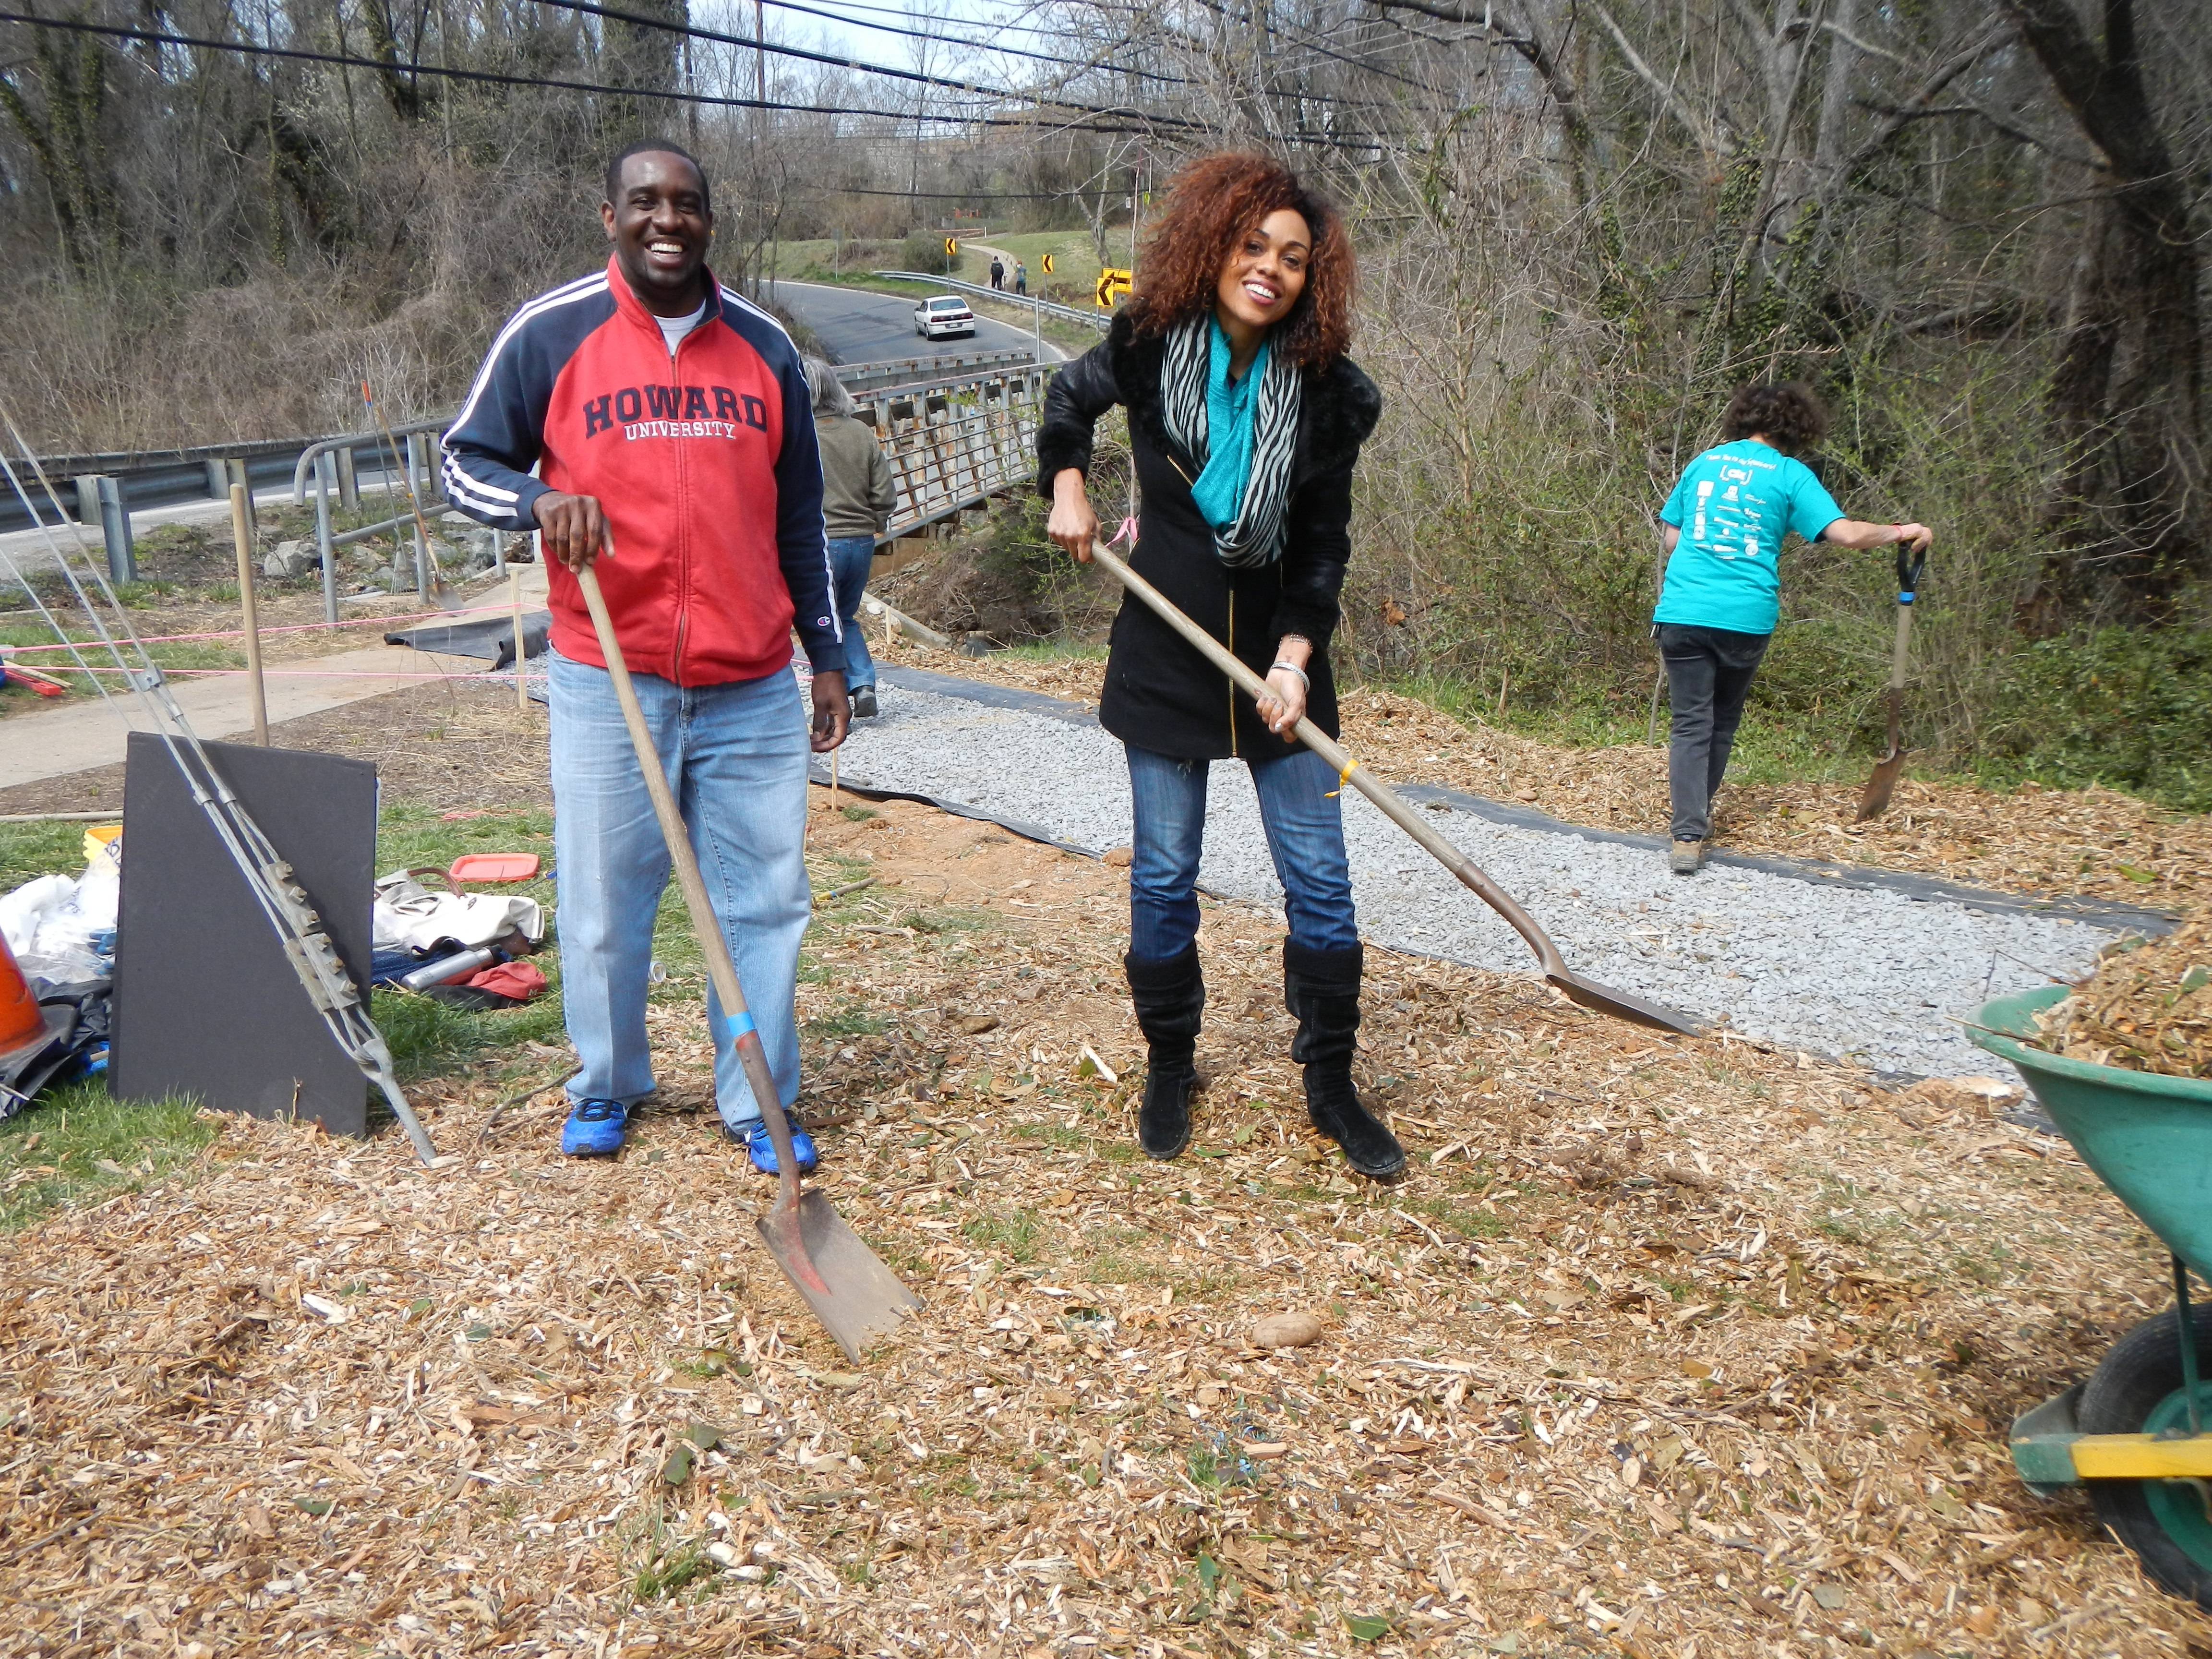 Mayor James at rain garden